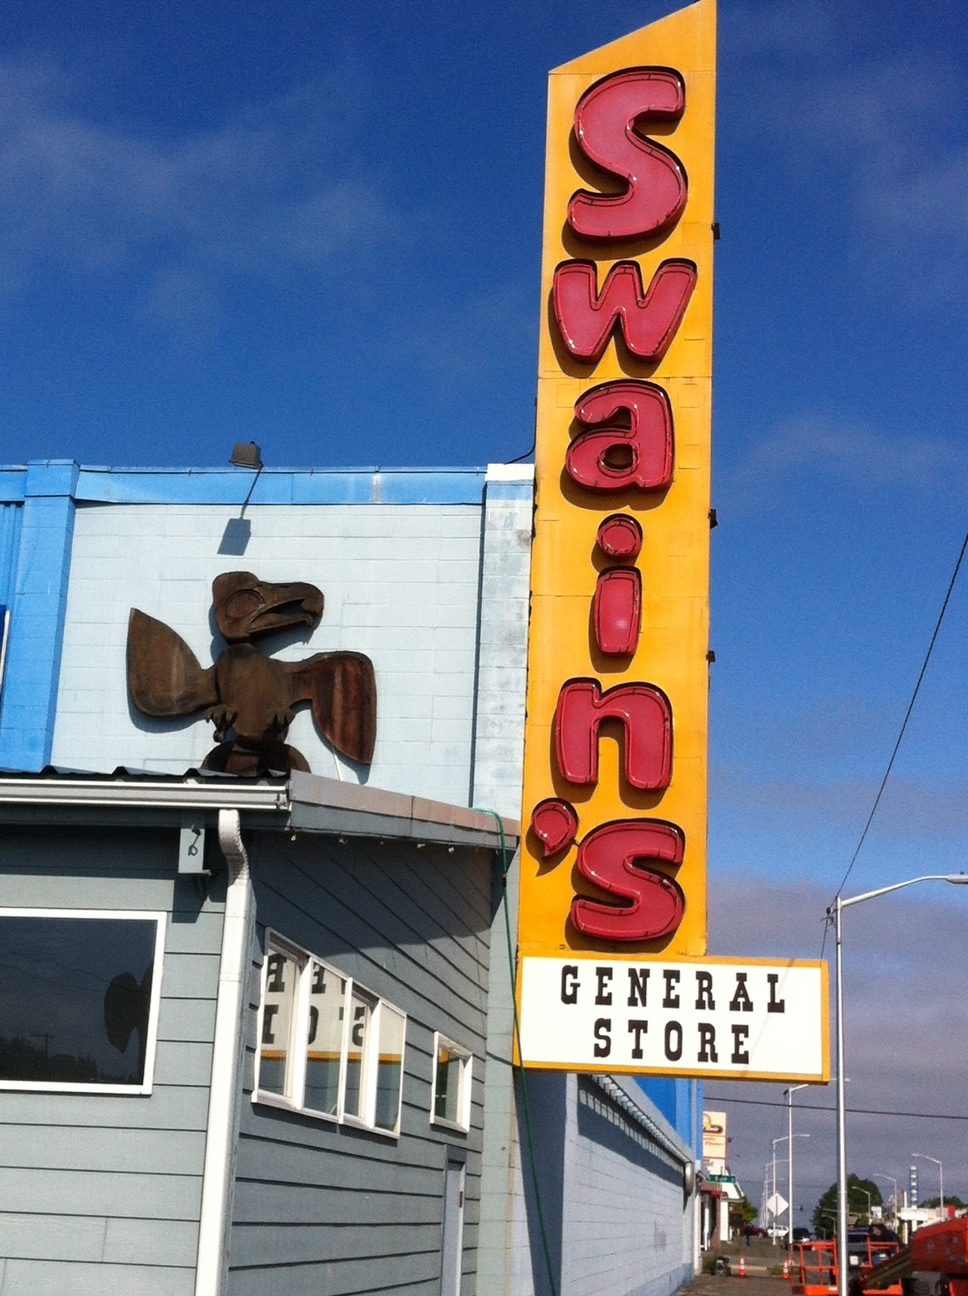 Swains General Store